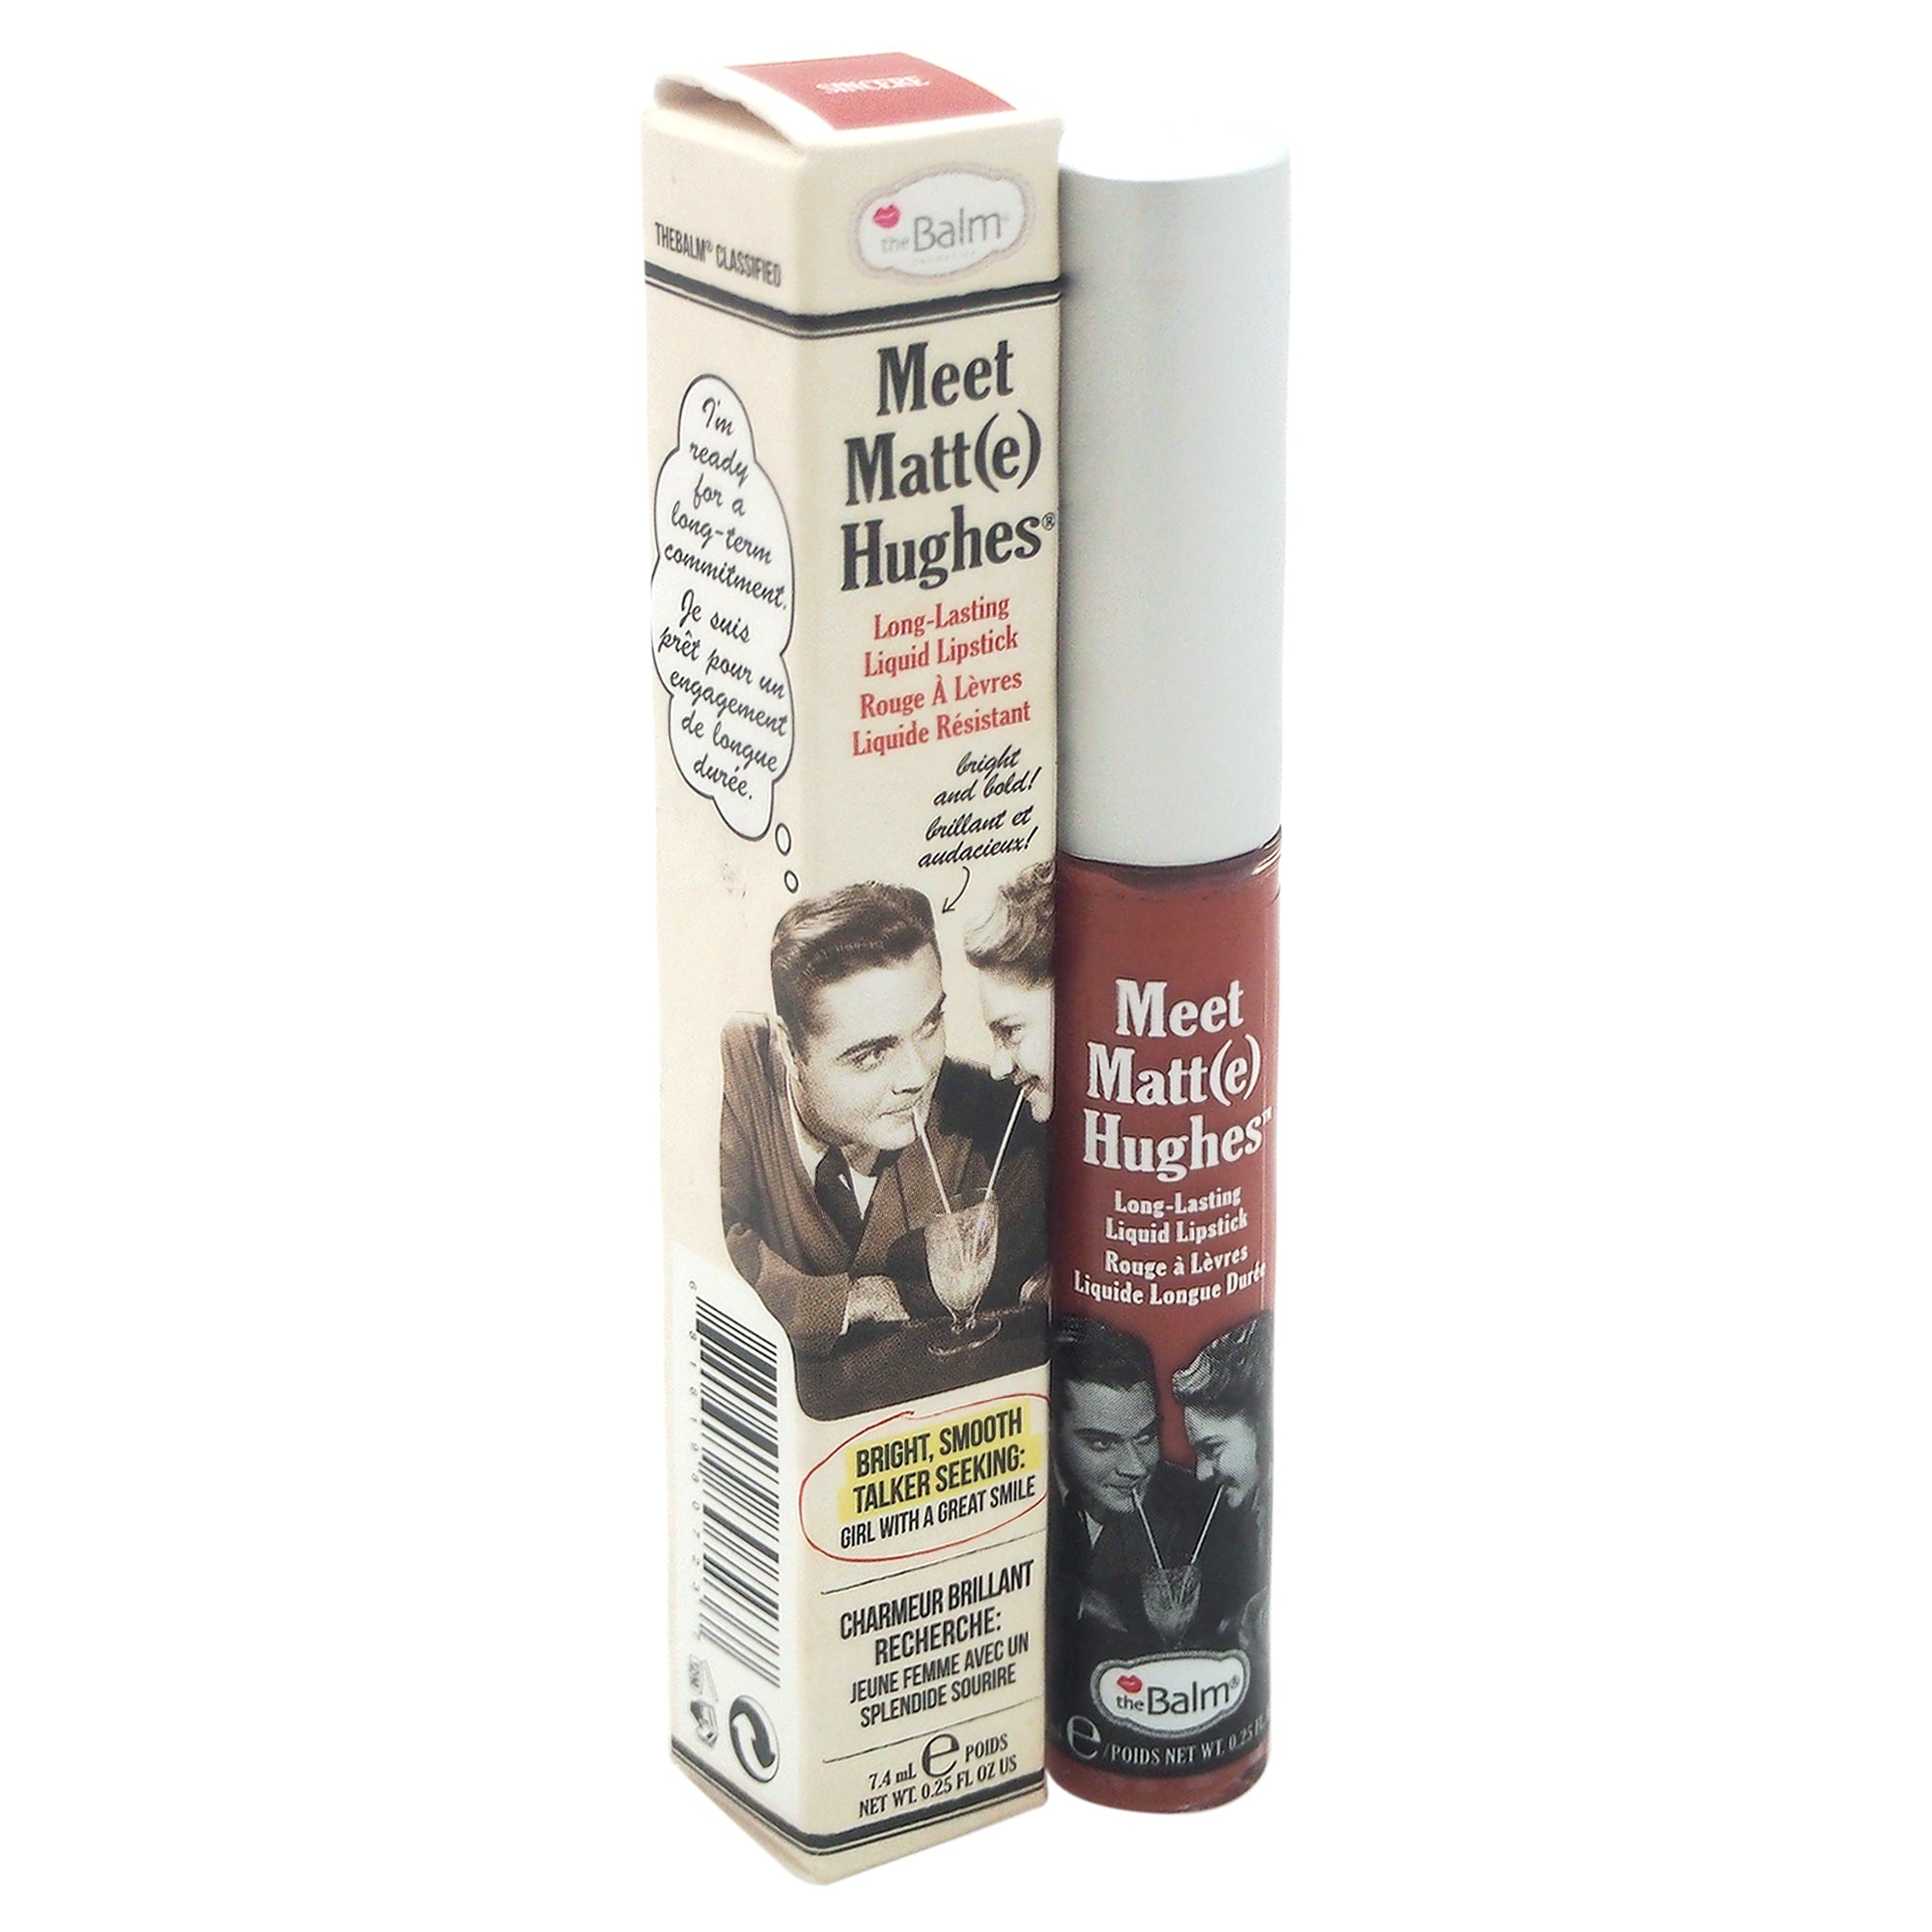 the Balm Meet Matte Hughes Long Lasting Liquid Lipstick